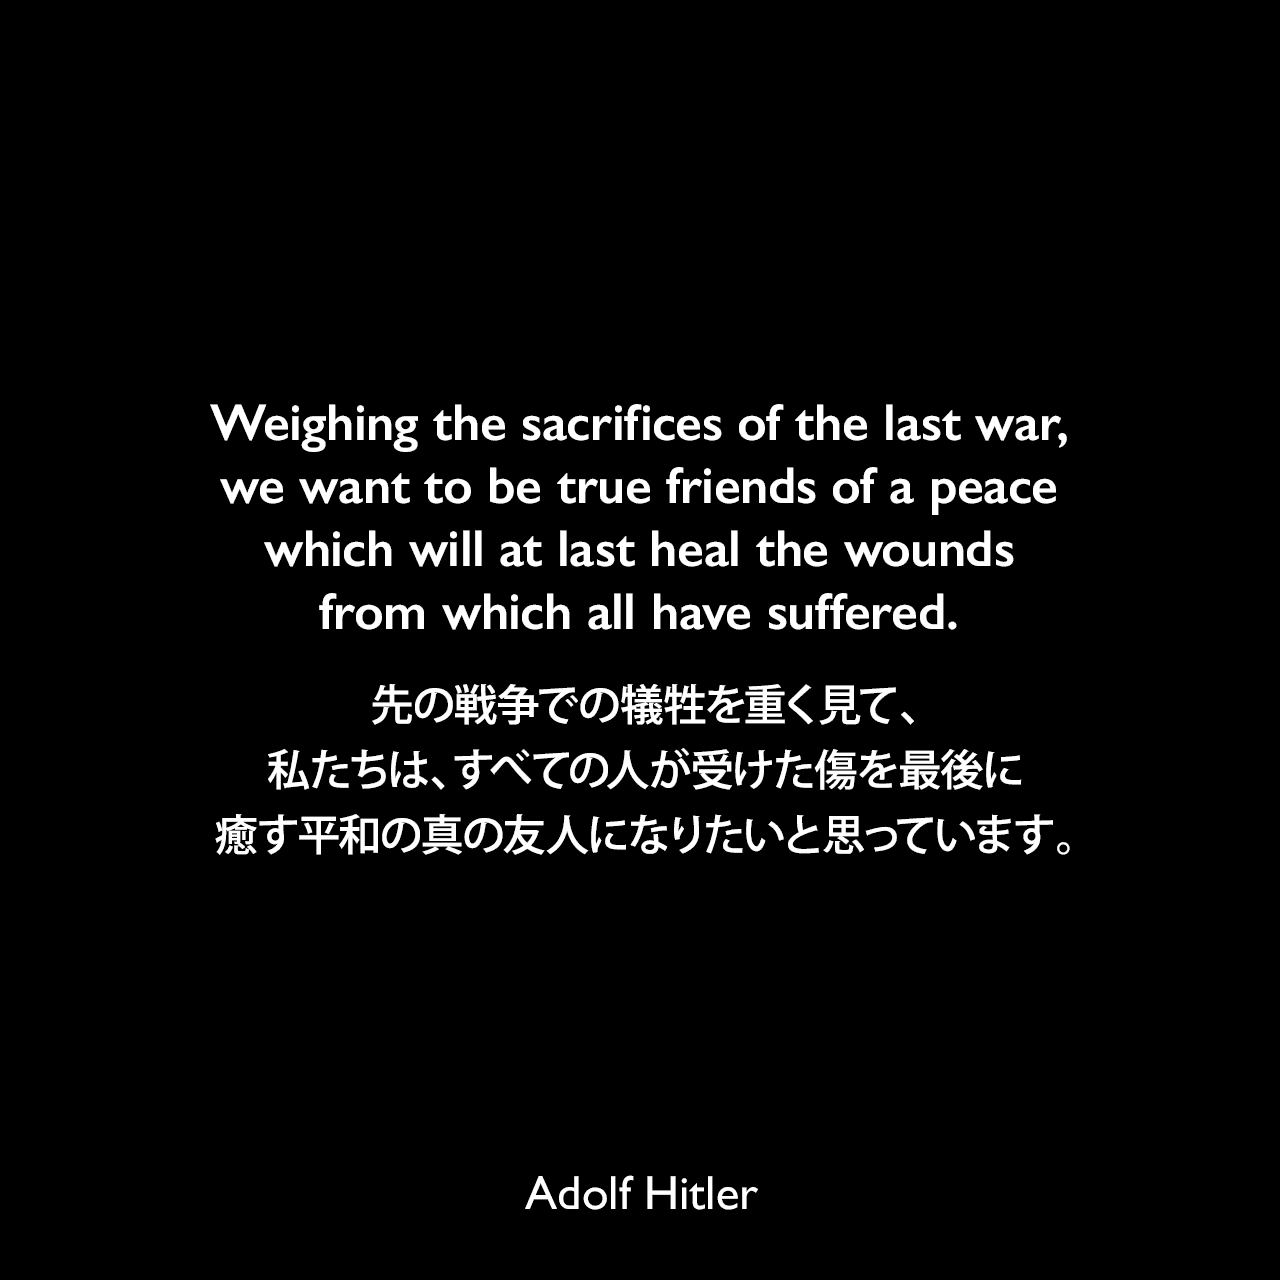 Weighing the sacrifices of the last war, we want to be true friends of a peace which will at last heal the wounds from which all have suffered.先の戦争での犠牲を重く見て、私たちは、すべての人が受けた傷を最後に癒す平和の真の友人になりたいと思っています。- 1933年3月21日ポツダムでの演説より(1939年9月26日タイムズ紙より引用)Adolf Hitler